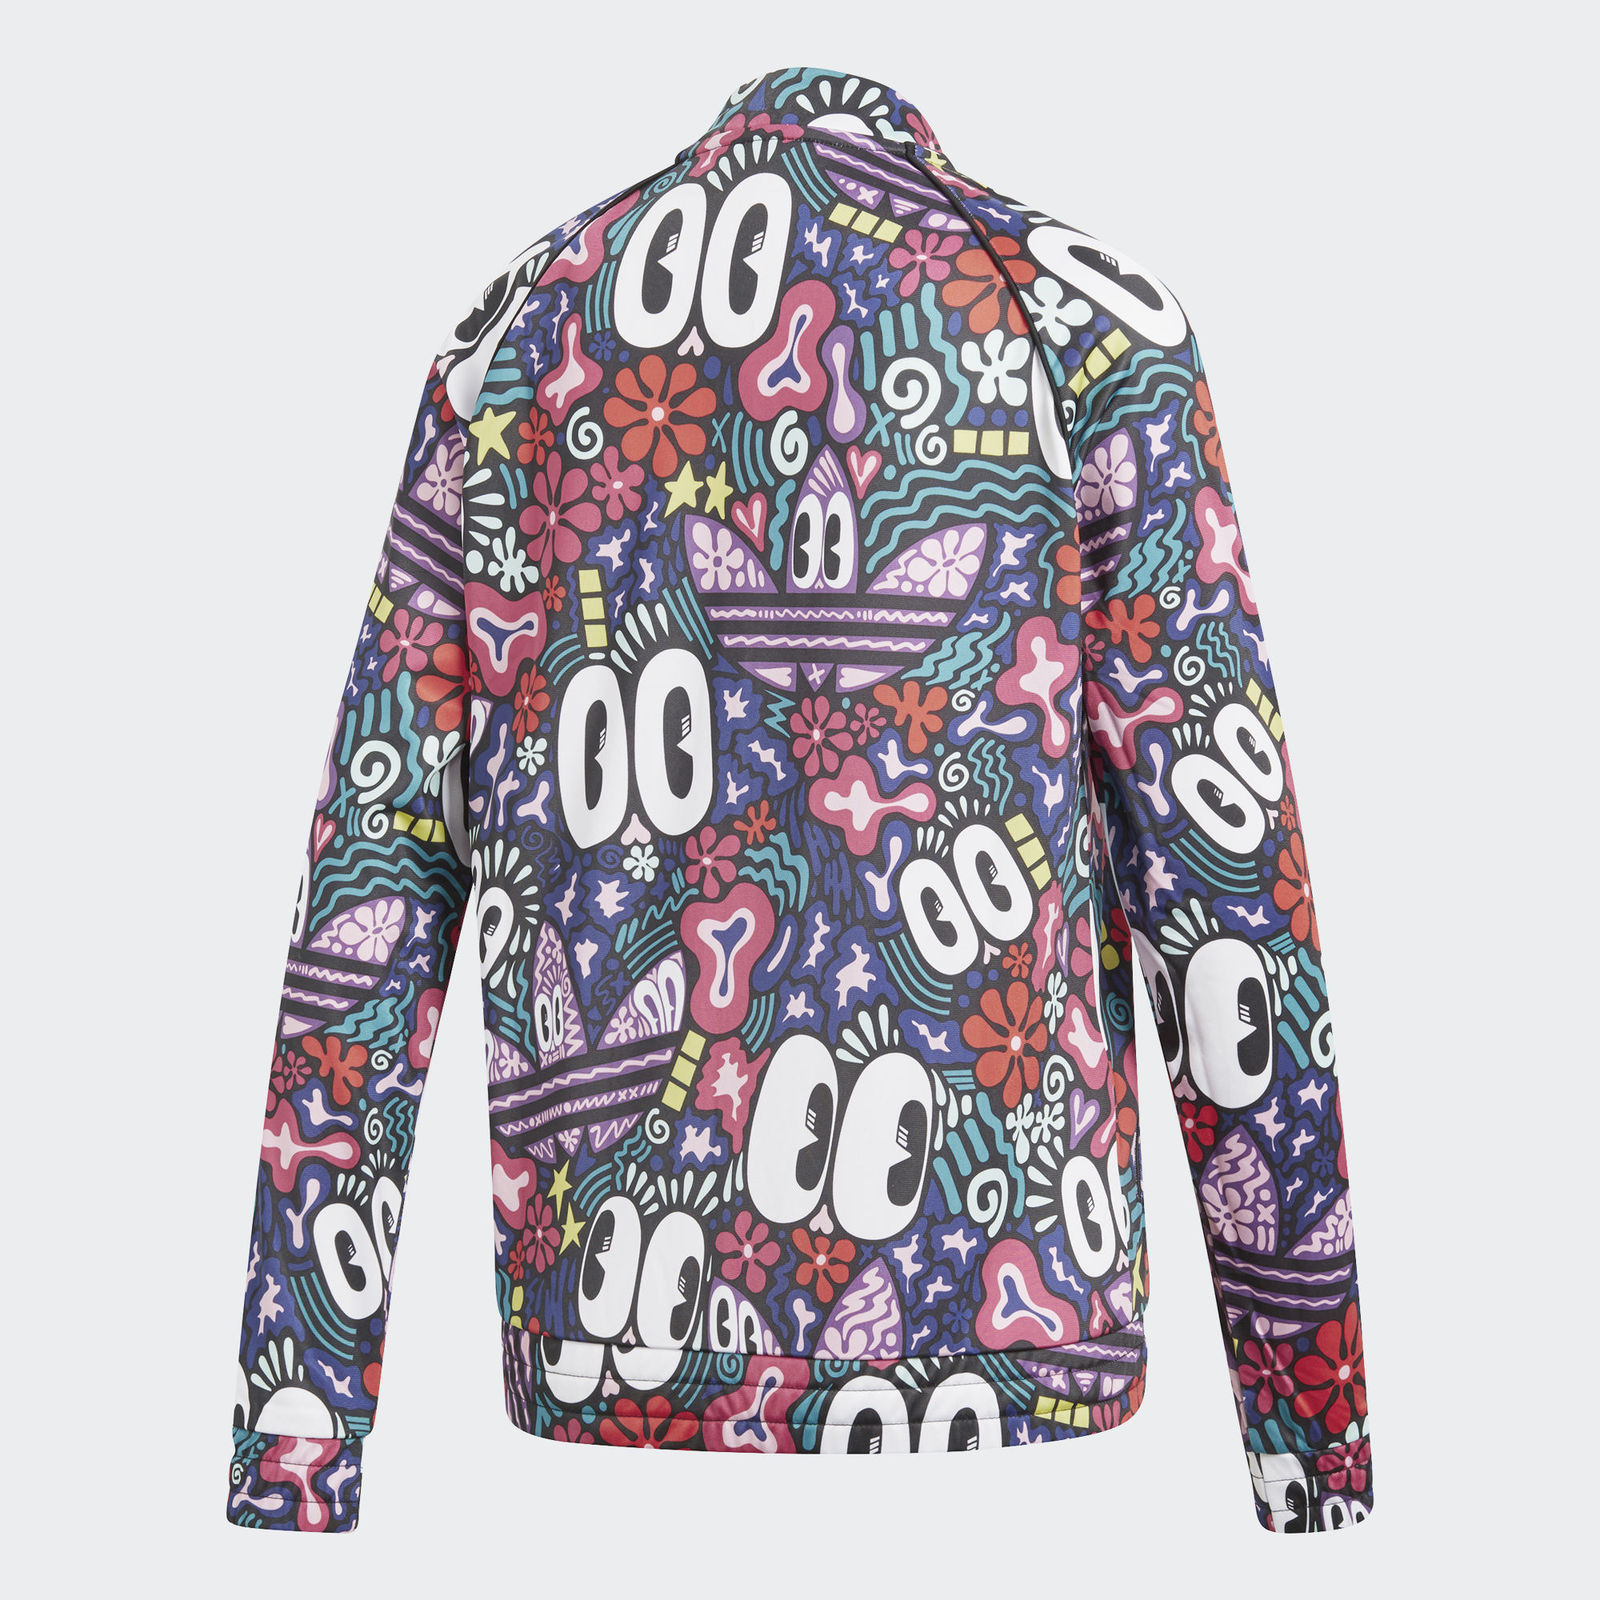 items Adidas 2019 similar Graffiti Originals New and 50 SST rCxBeWdo